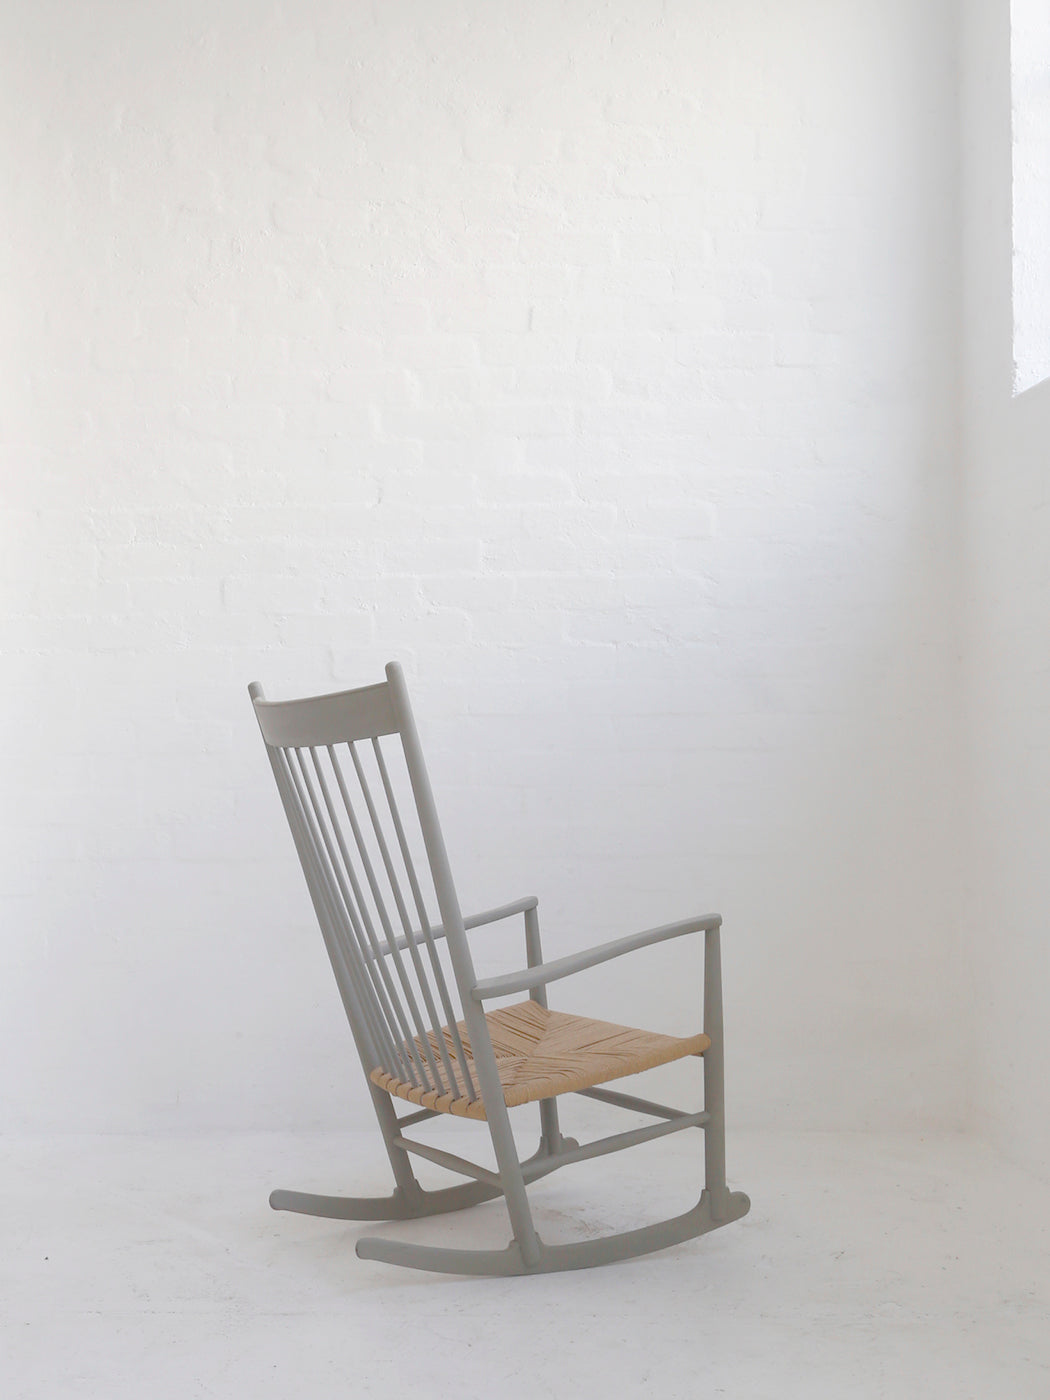 Hans J. Wegner 'J16' Rocking Chair